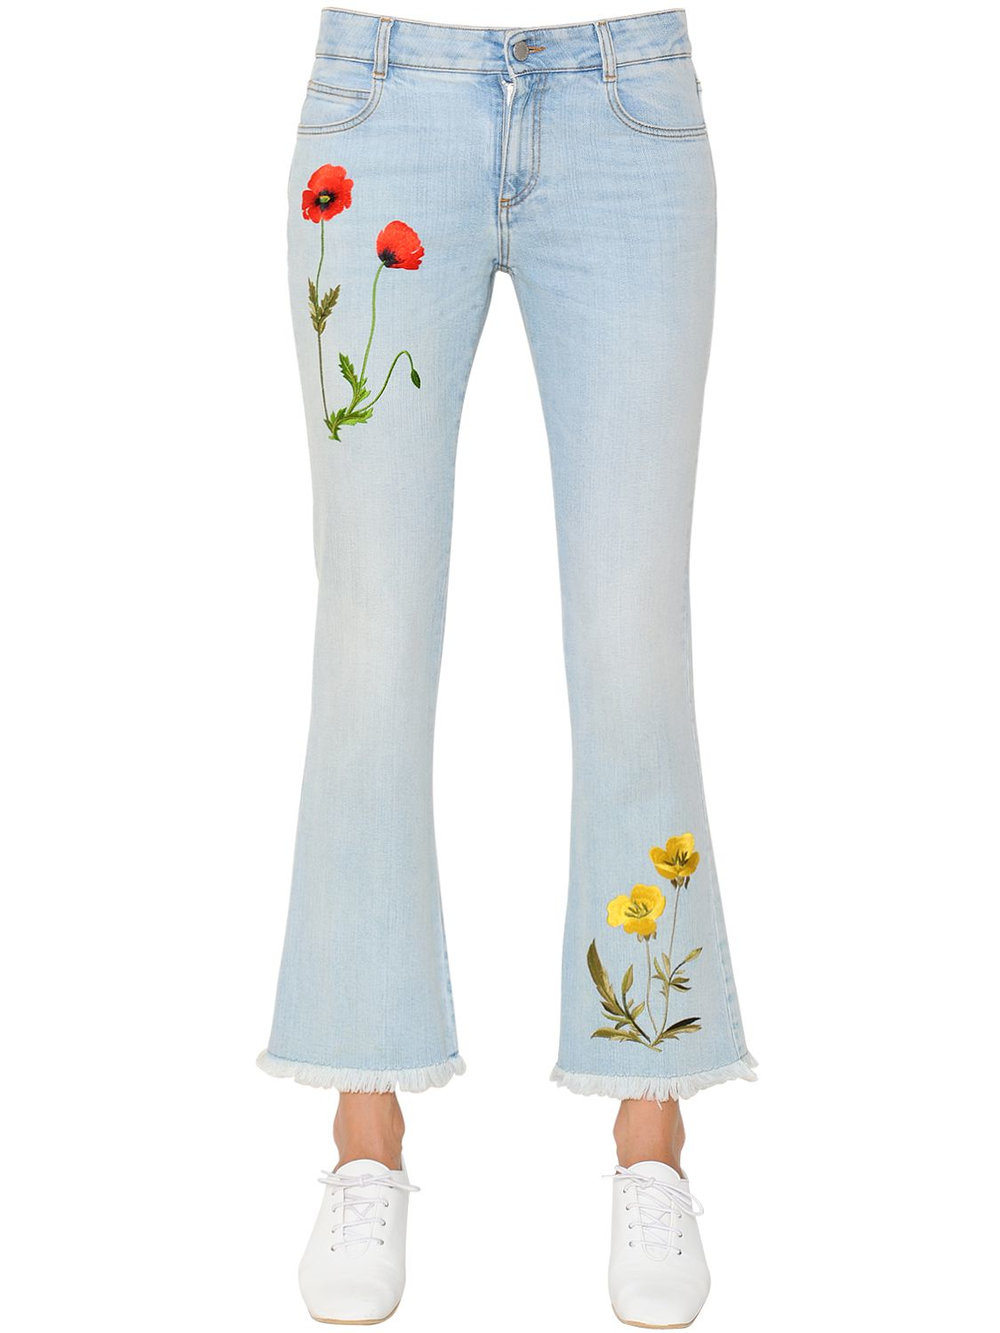 stella-mccartney-light-blue-floral-embroidered-flared-denim-jeans-blue-product-2-362742895-normal.jpeg